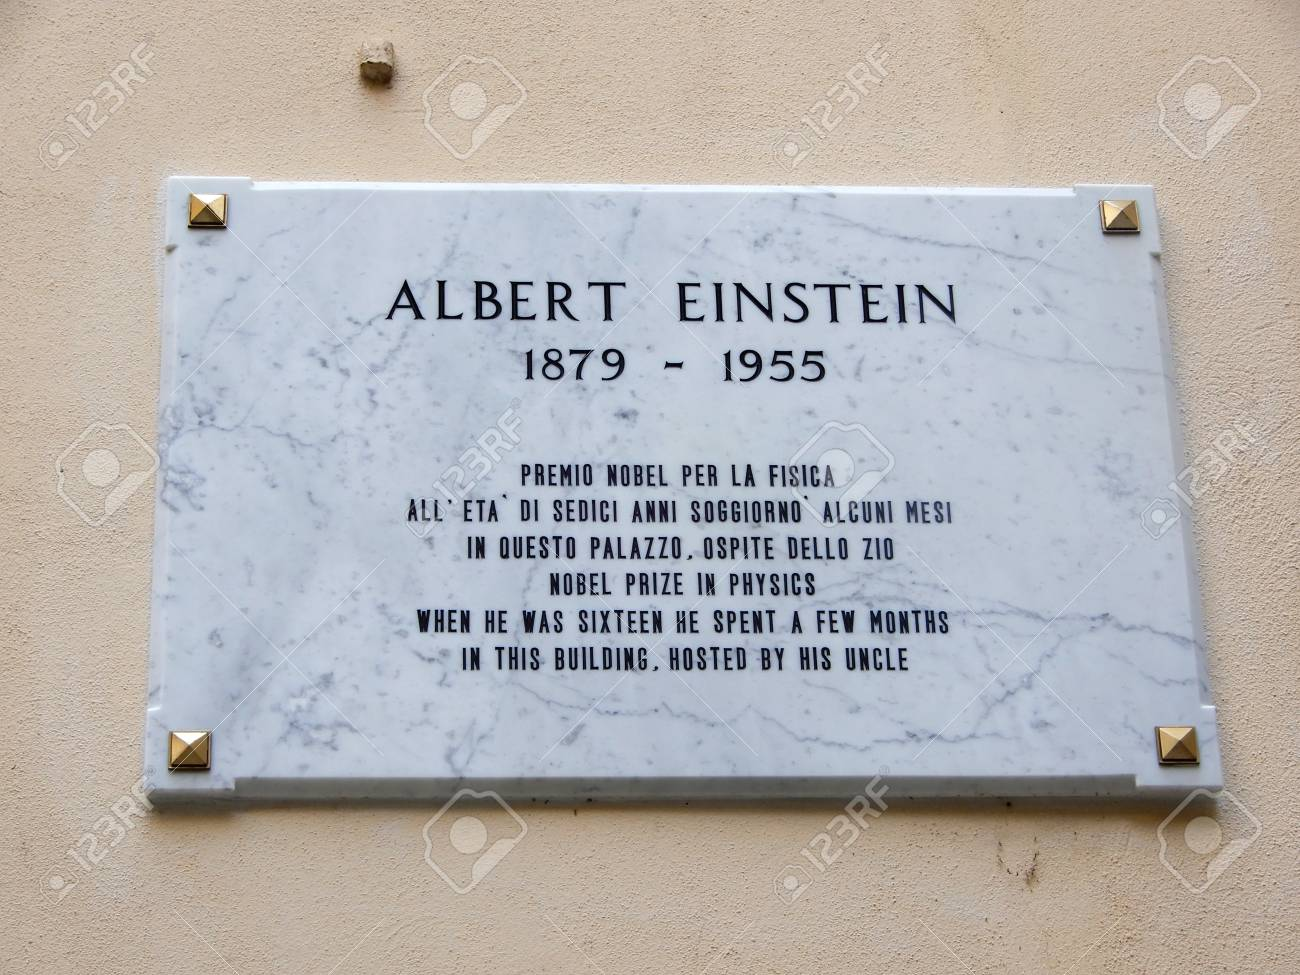 License Plate Of Albert Einstein Nobel Prize In Physics When Stock Photo Picture And Royalty Free Image Image 107474609 If the vehicle uses only one licence plate the excessive sticker must be attached to the registration papers. license plate of albert einstein nobel prize in physics when